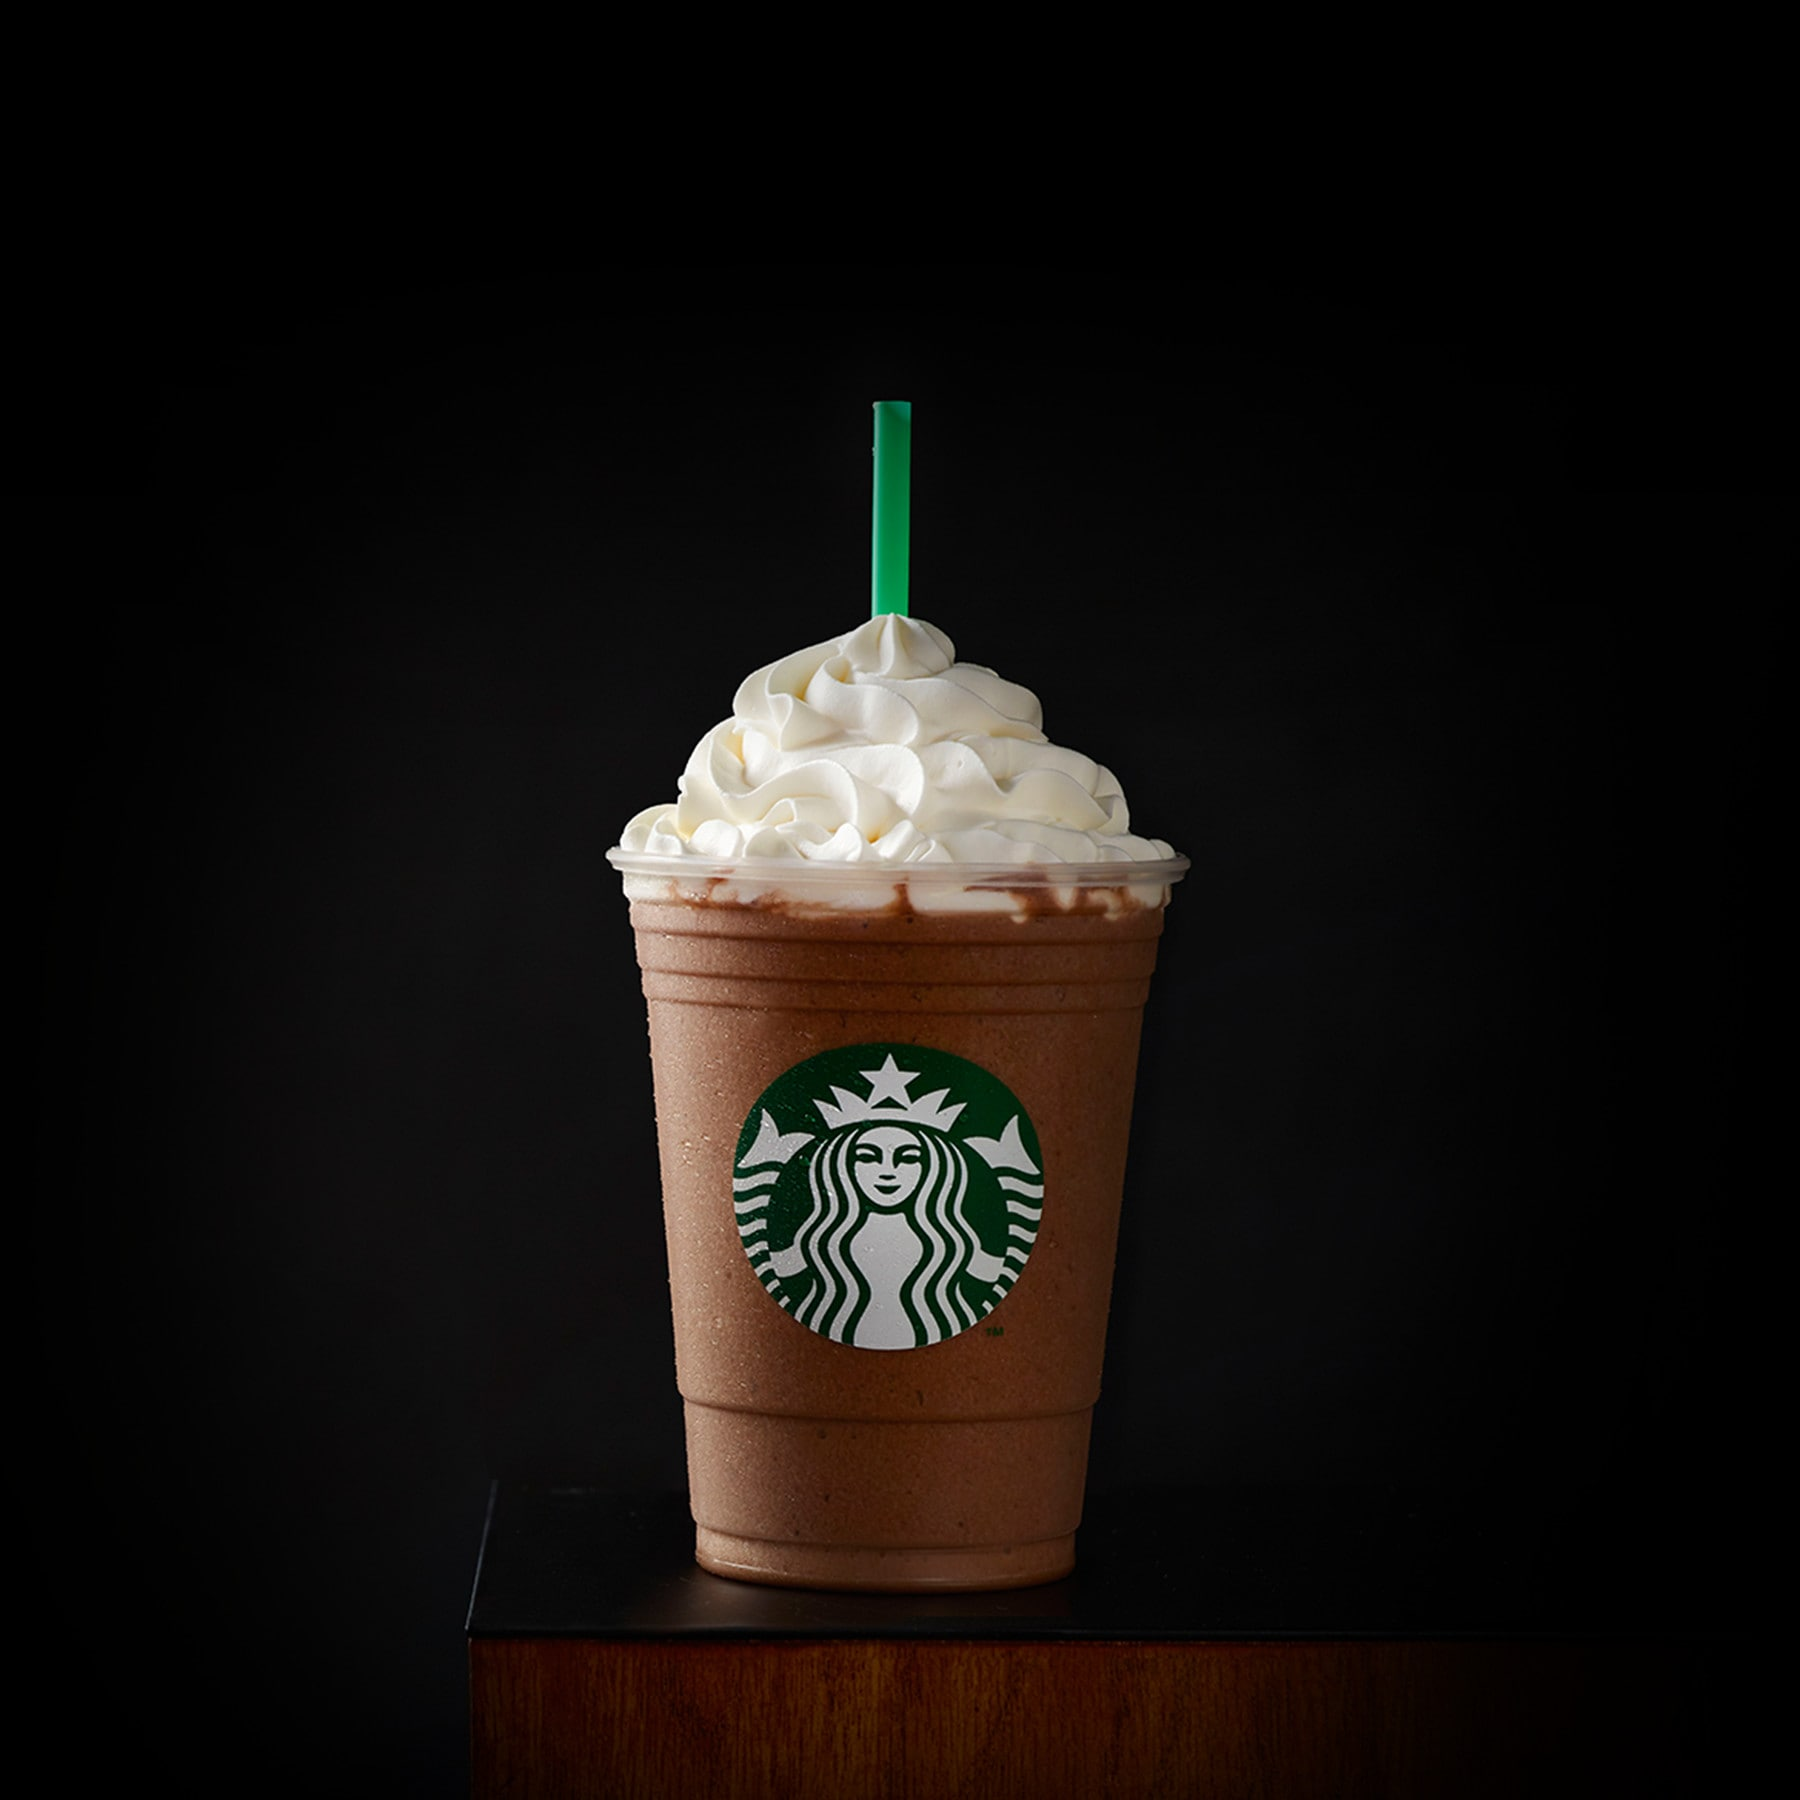 Mocha Frappuccino 174 Blended Coffee Starbucks Coffee Company